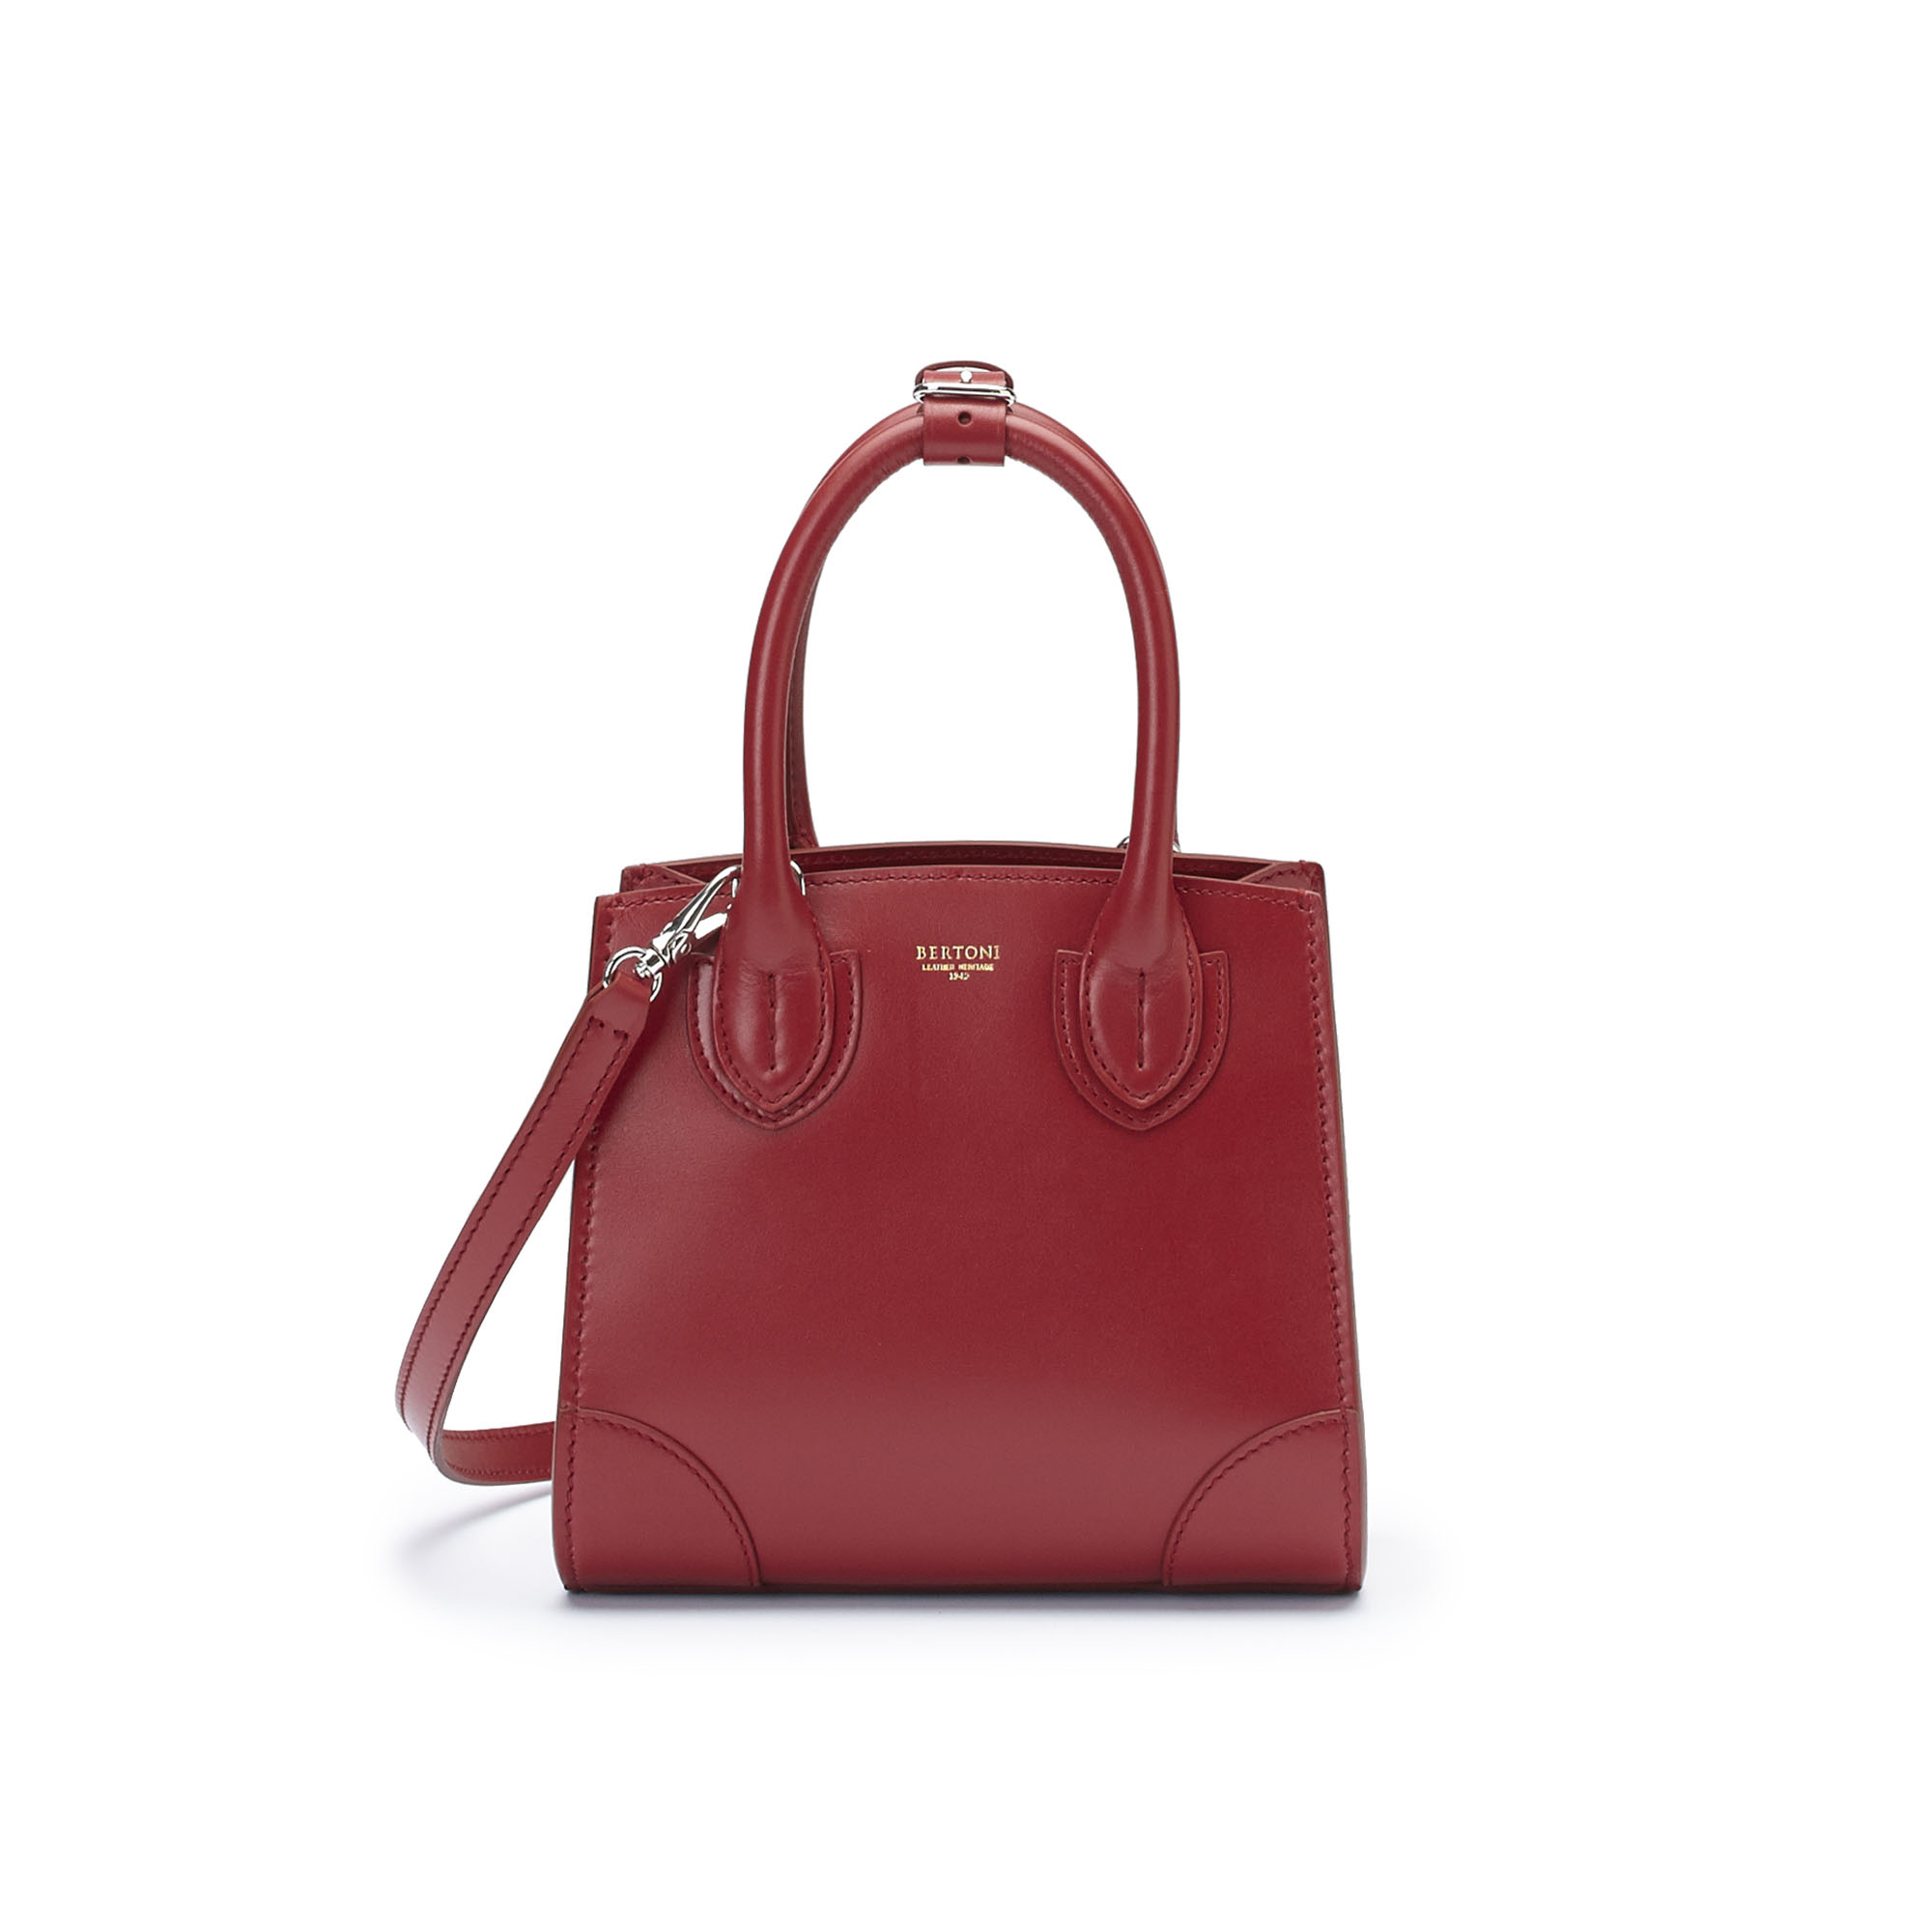 The red french calf Darcy bag by Bertoni 1949 02